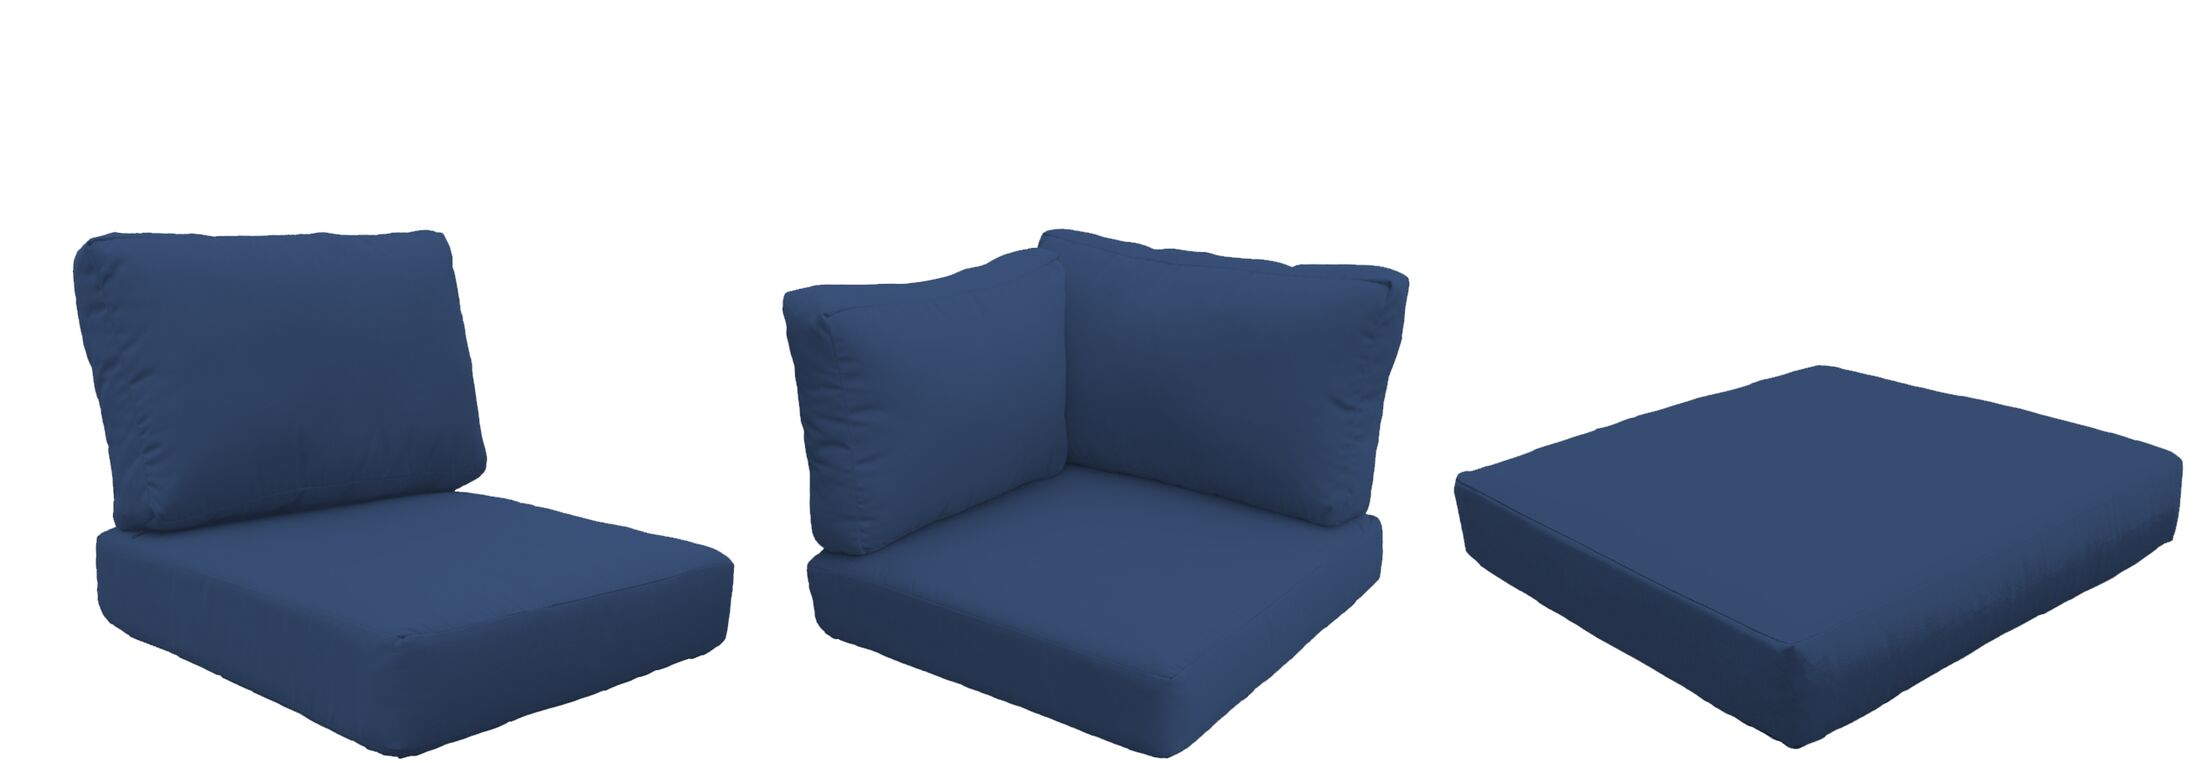 Fairmont Outdoor 23 Piece Lounge Chair Cushion Set Fabric: Navy